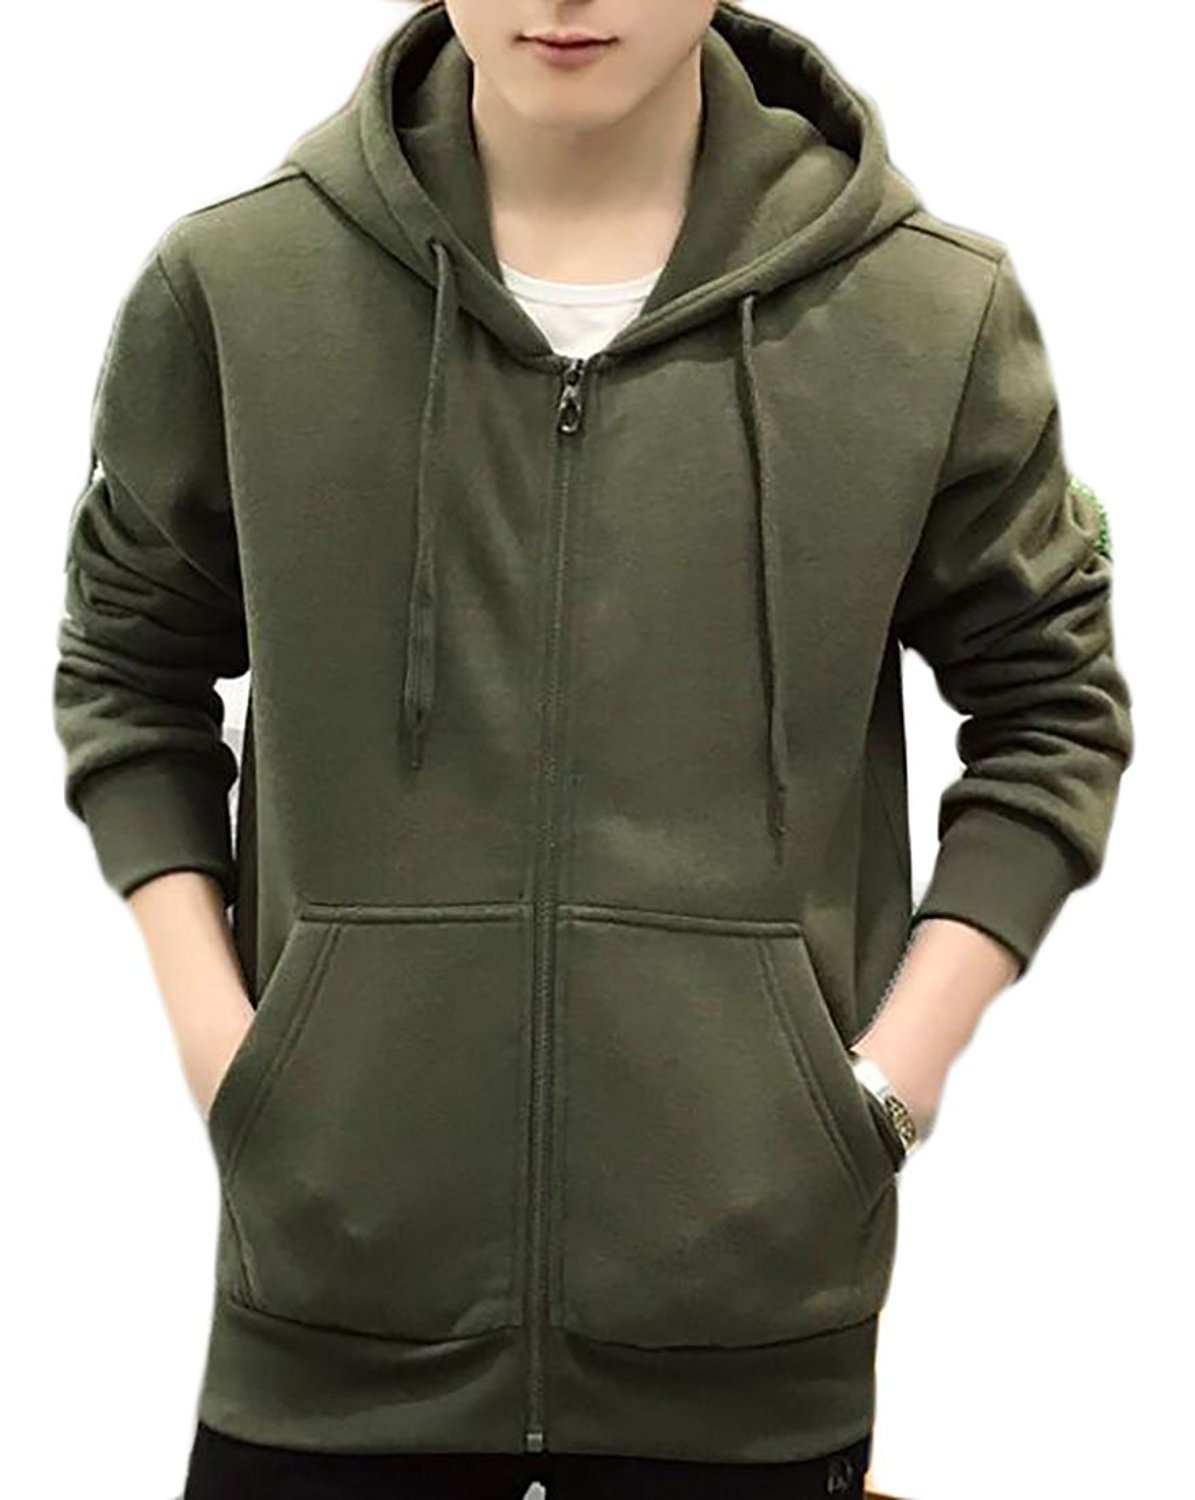 Oberora Mens Casual Solid Color Hoodies Front Zip Classic Sweatshirt Jackets